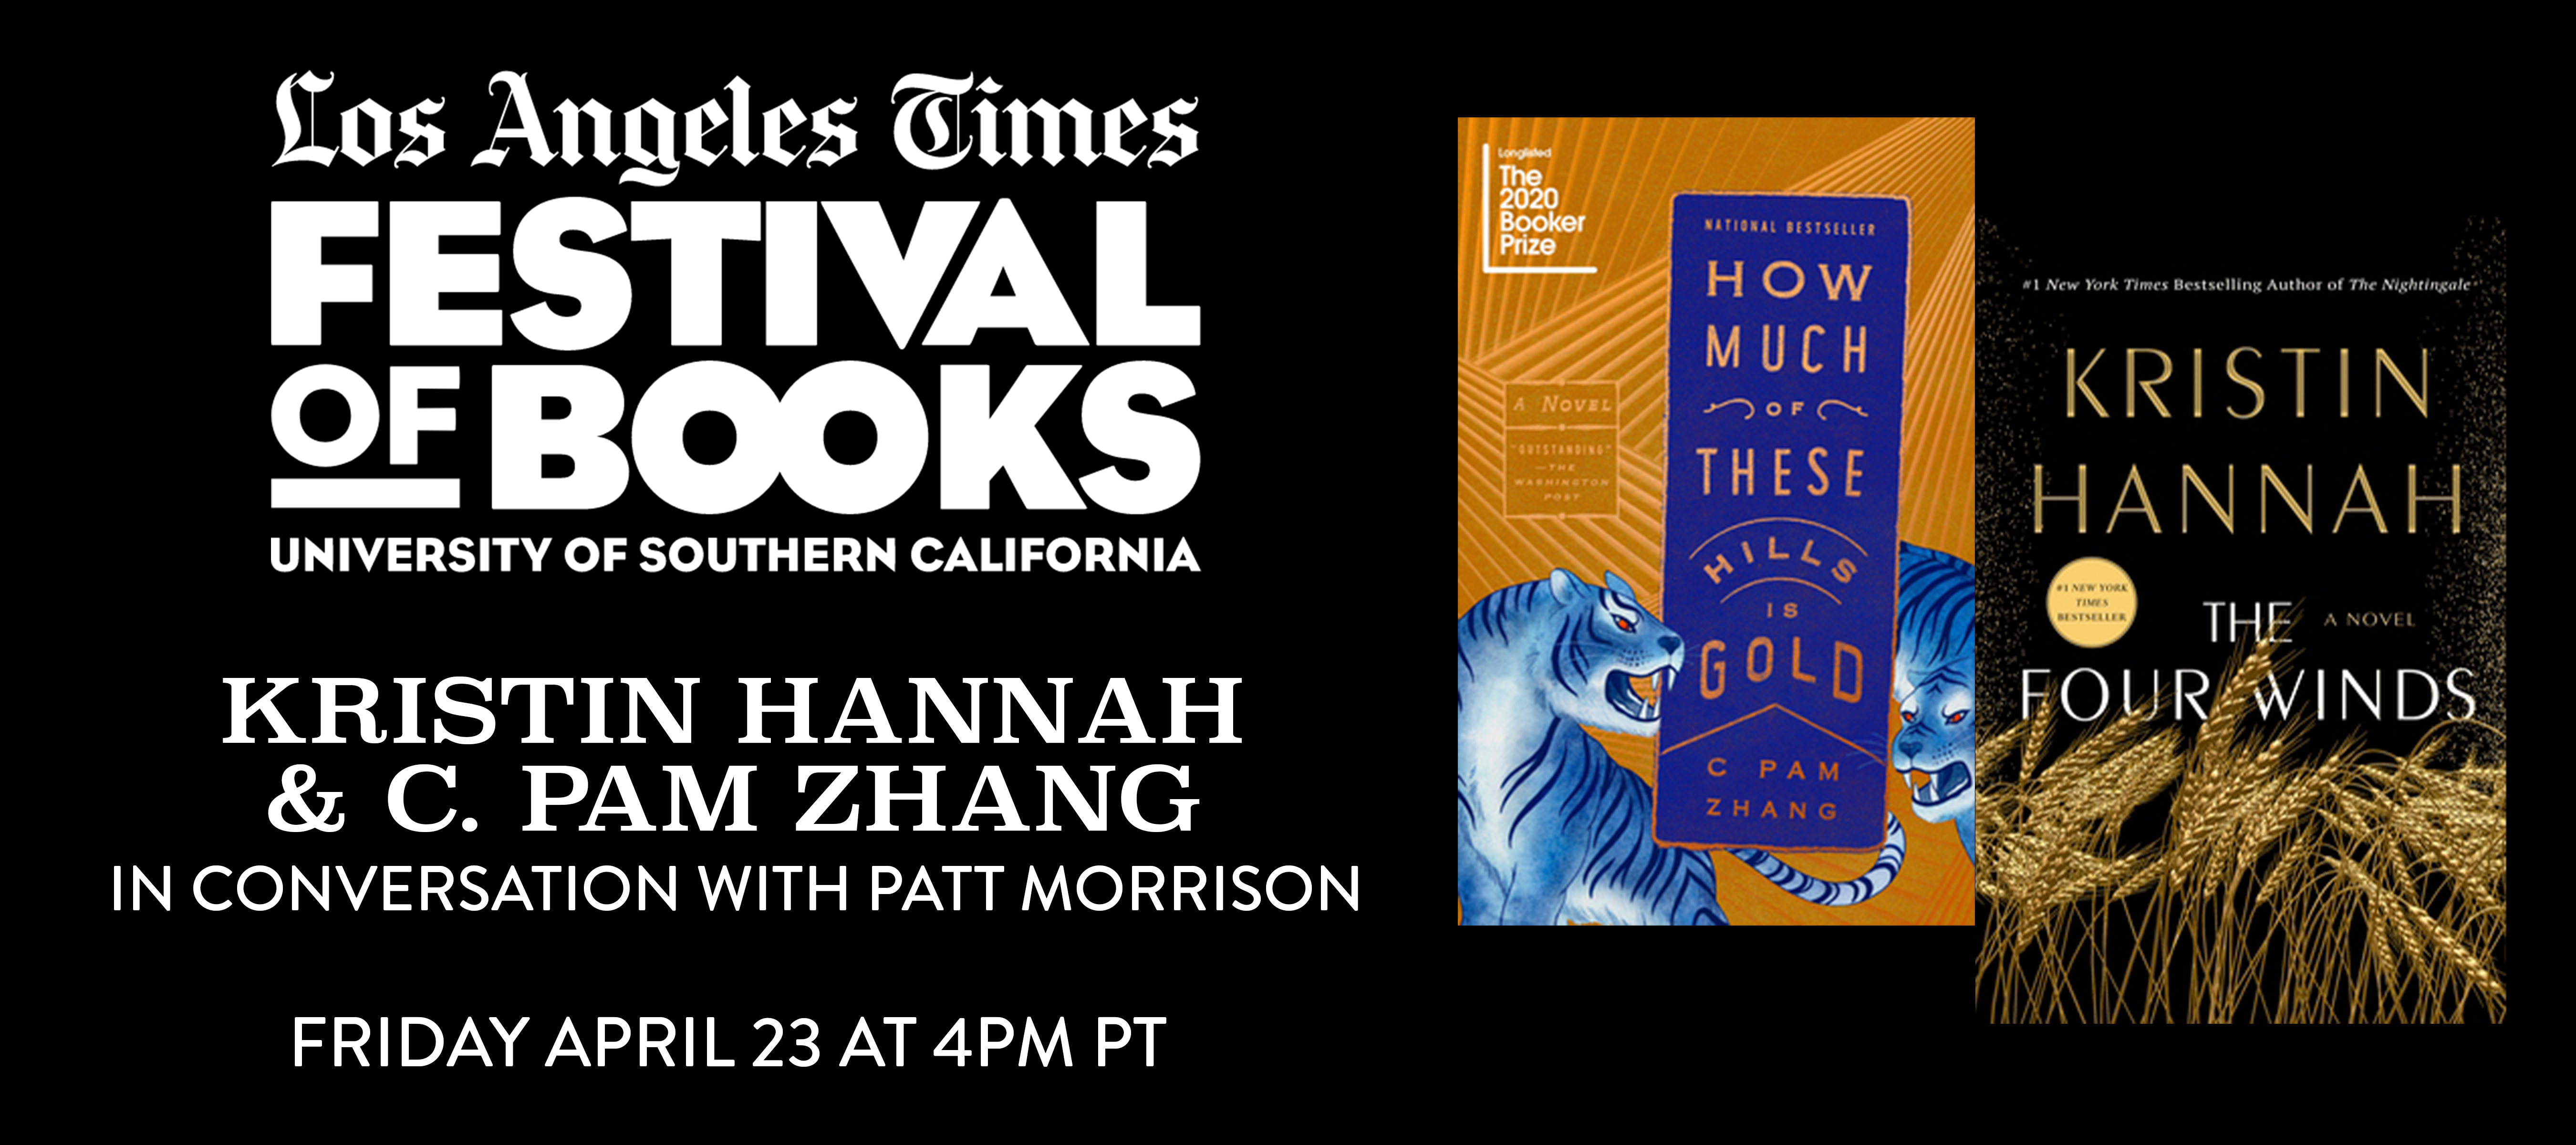 """Friday, April 23, 4:00p Kristin Hannah, Author of """"The Four Winds,"""" and C Pam Zhang, Author of """"How Much of These Hills Is Gold,"""" in Conversation with Patt Morrison"""